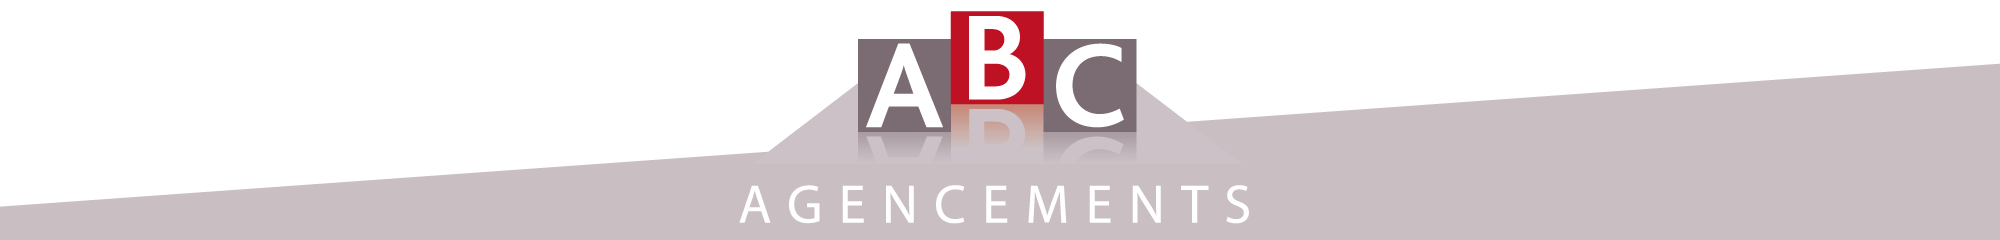 abc agencement